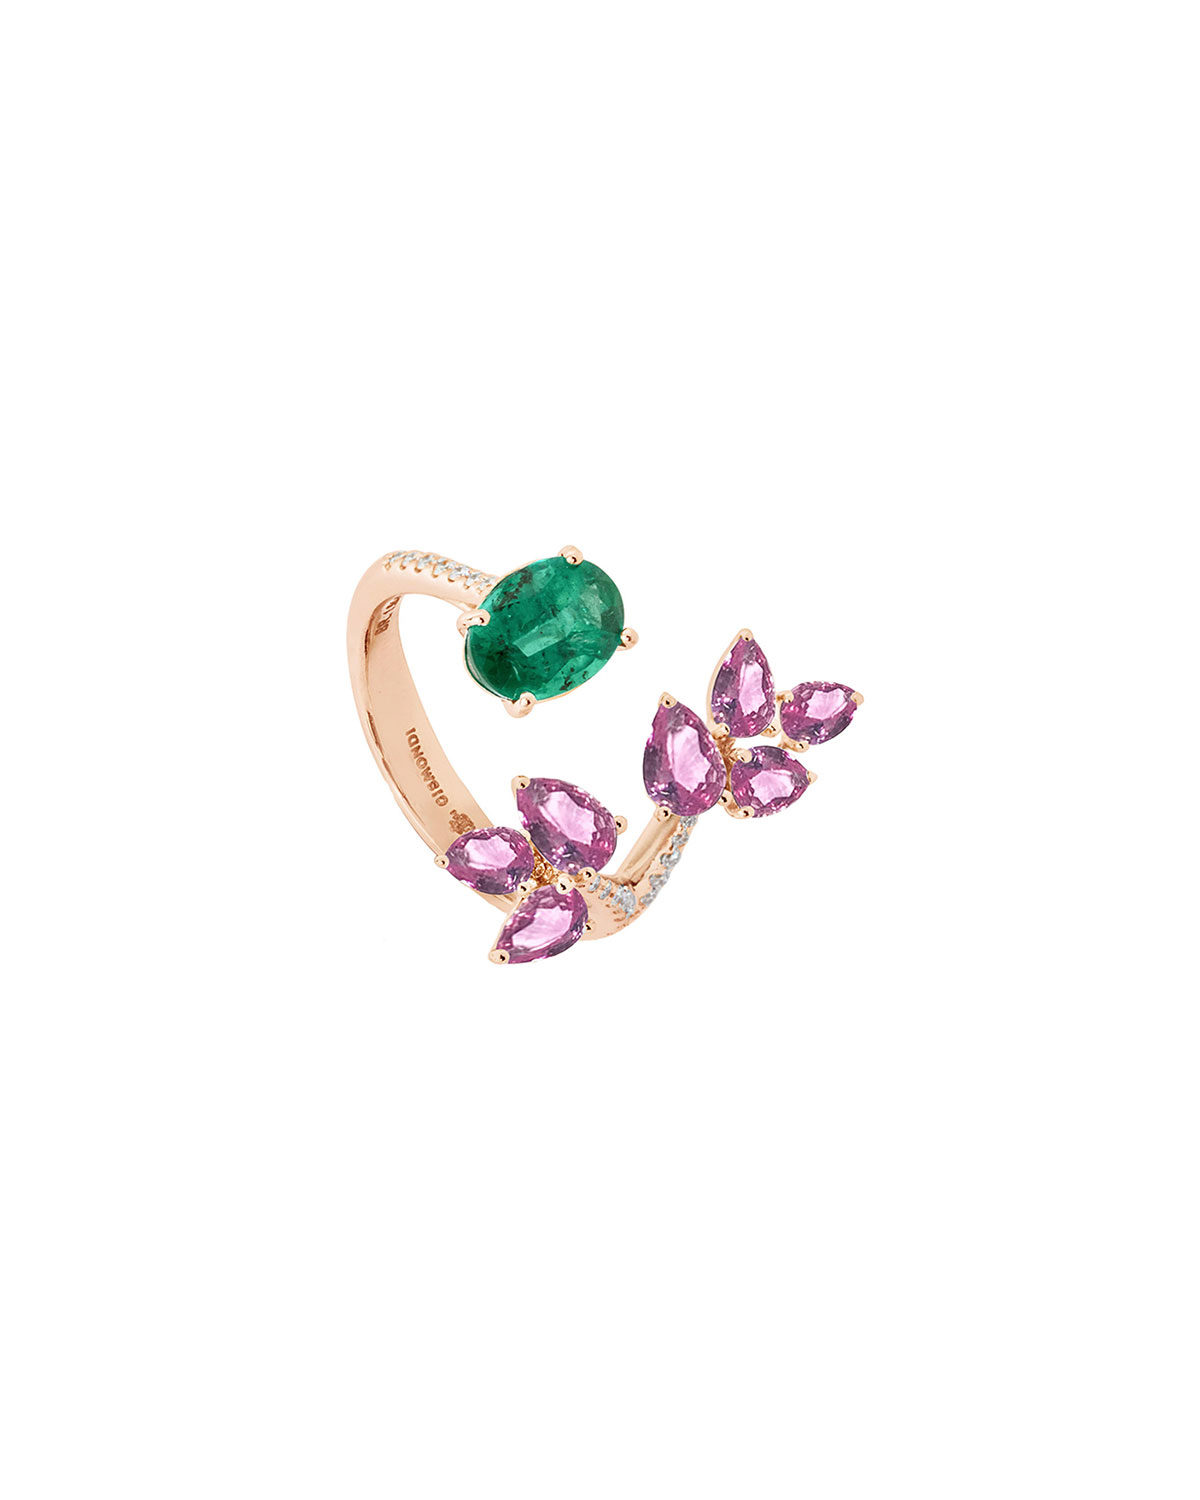 18k Rose Gold Open Emerald-End Ring with Diamonds and Sapphires